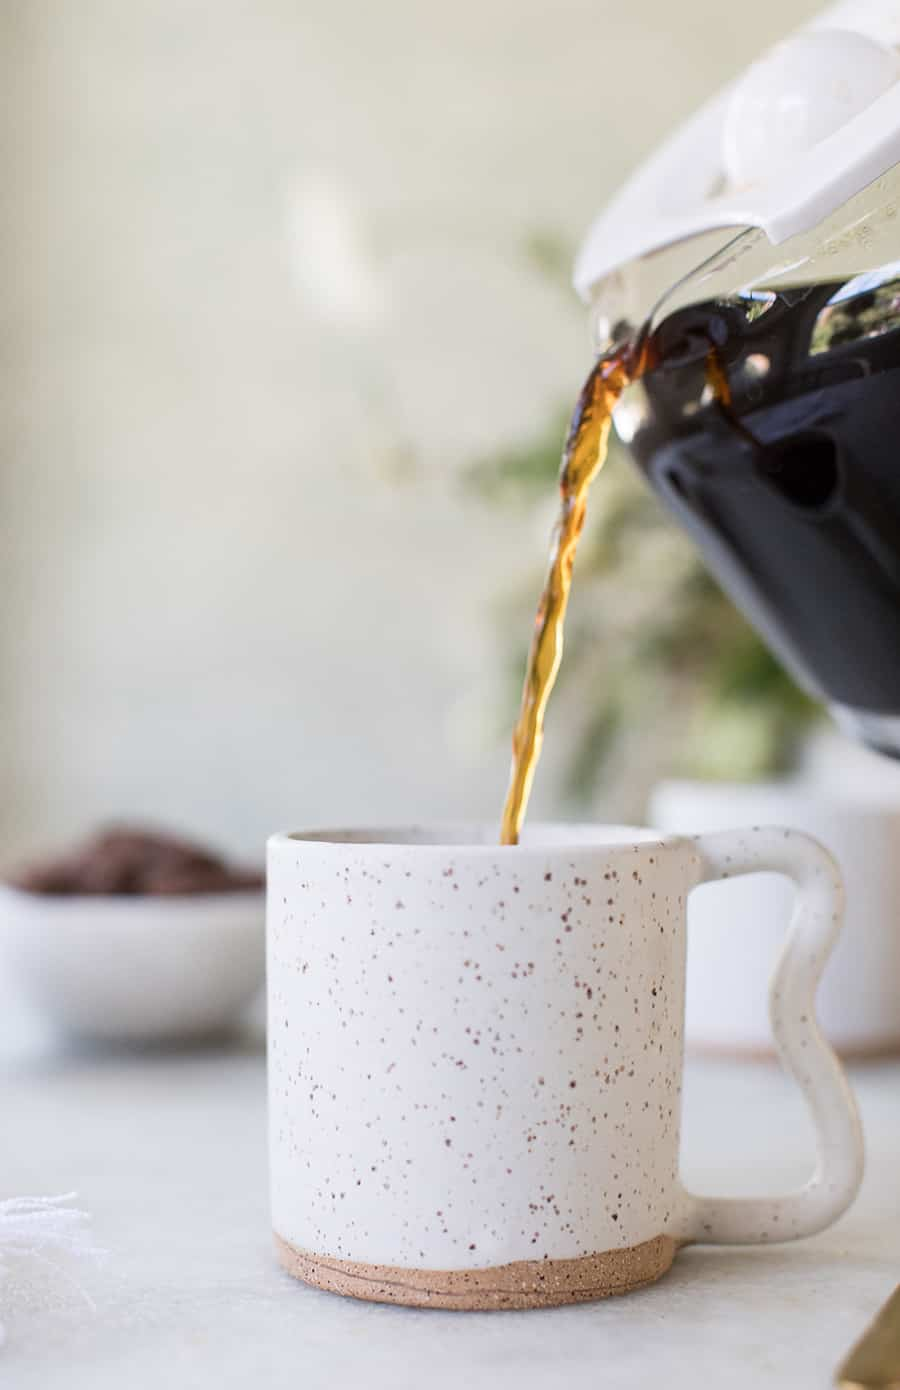 side shot of coffee being poured into a mug